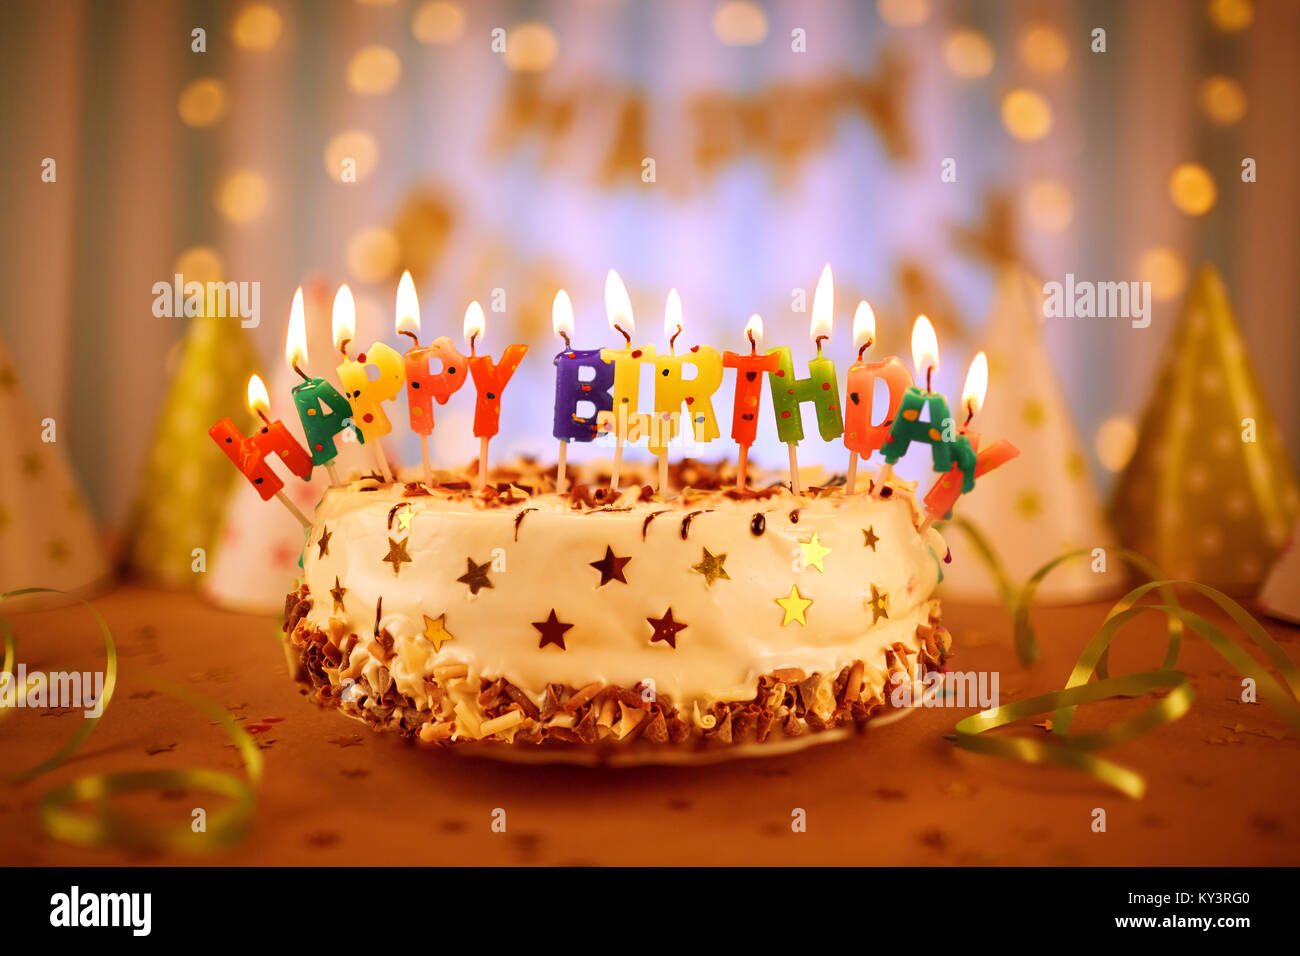 Outstanding Happy Birthday Cake With Candles Stock Photo 171573360 Alamy Funny Birthday Cards Online Elaedamsfinfo